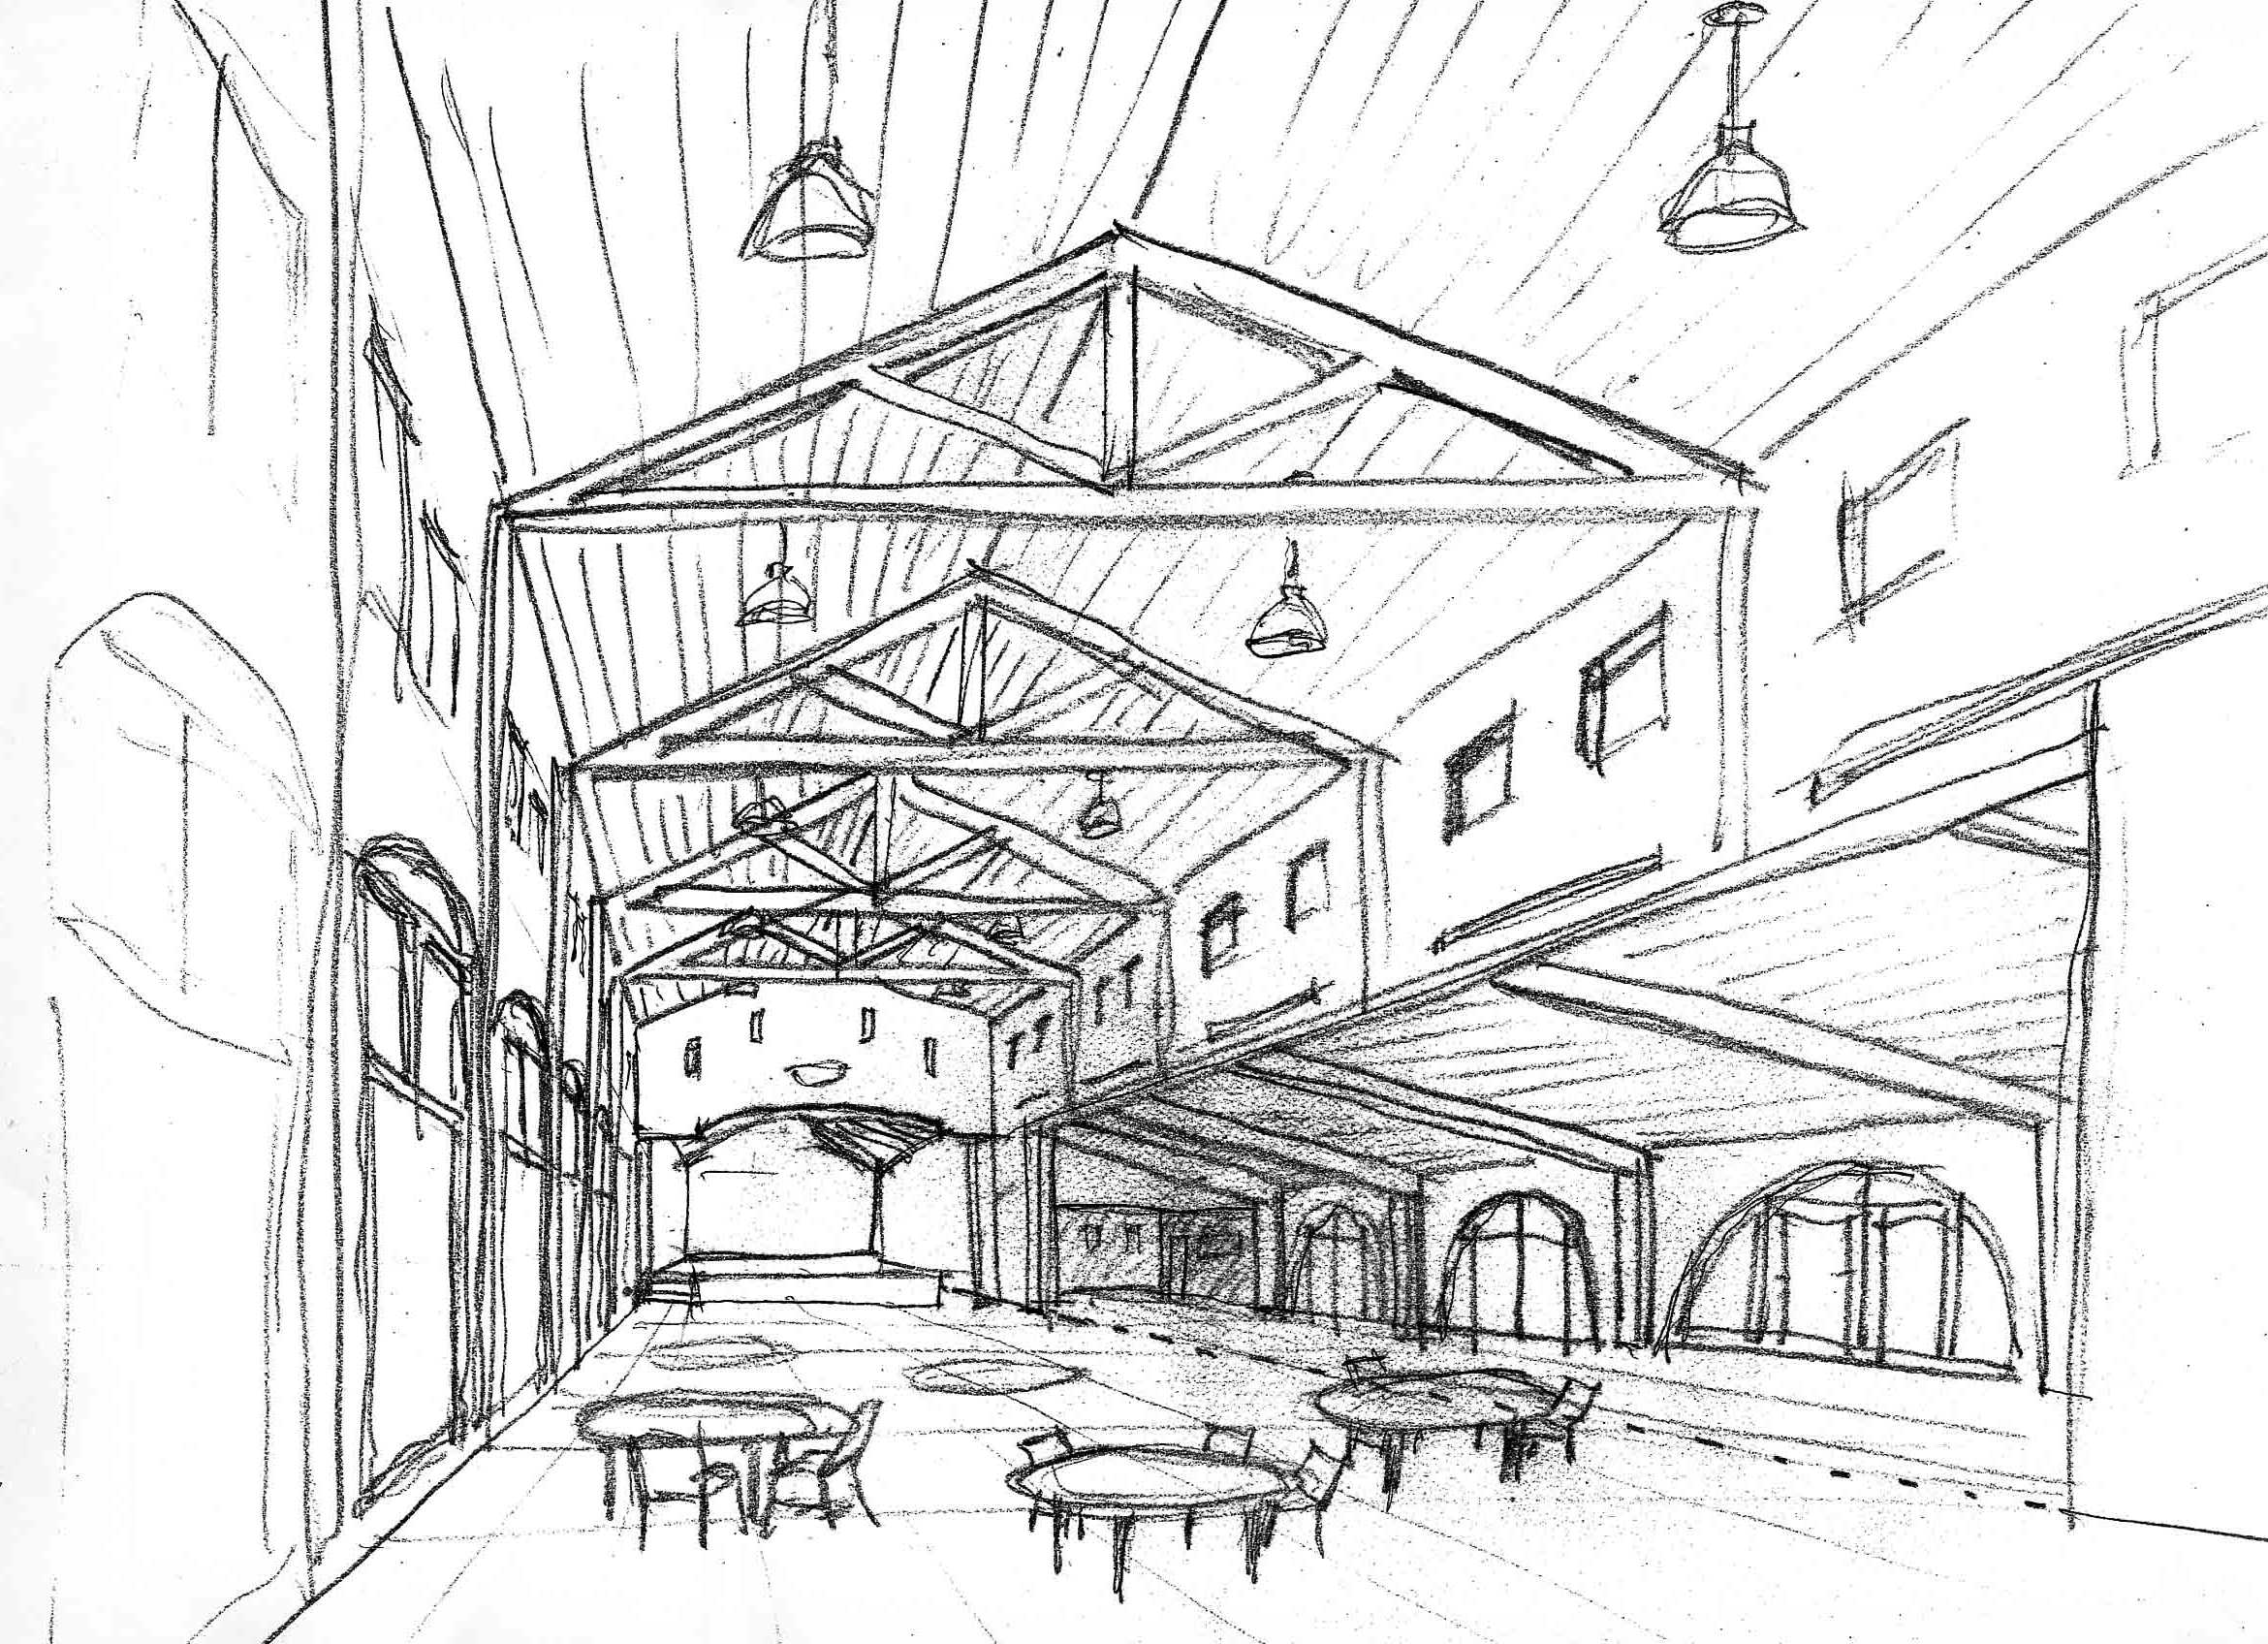 Northgate Senior & Community Center, ENR architects with G4 Architects, Fremont, CA 94555 - Concept Sketch